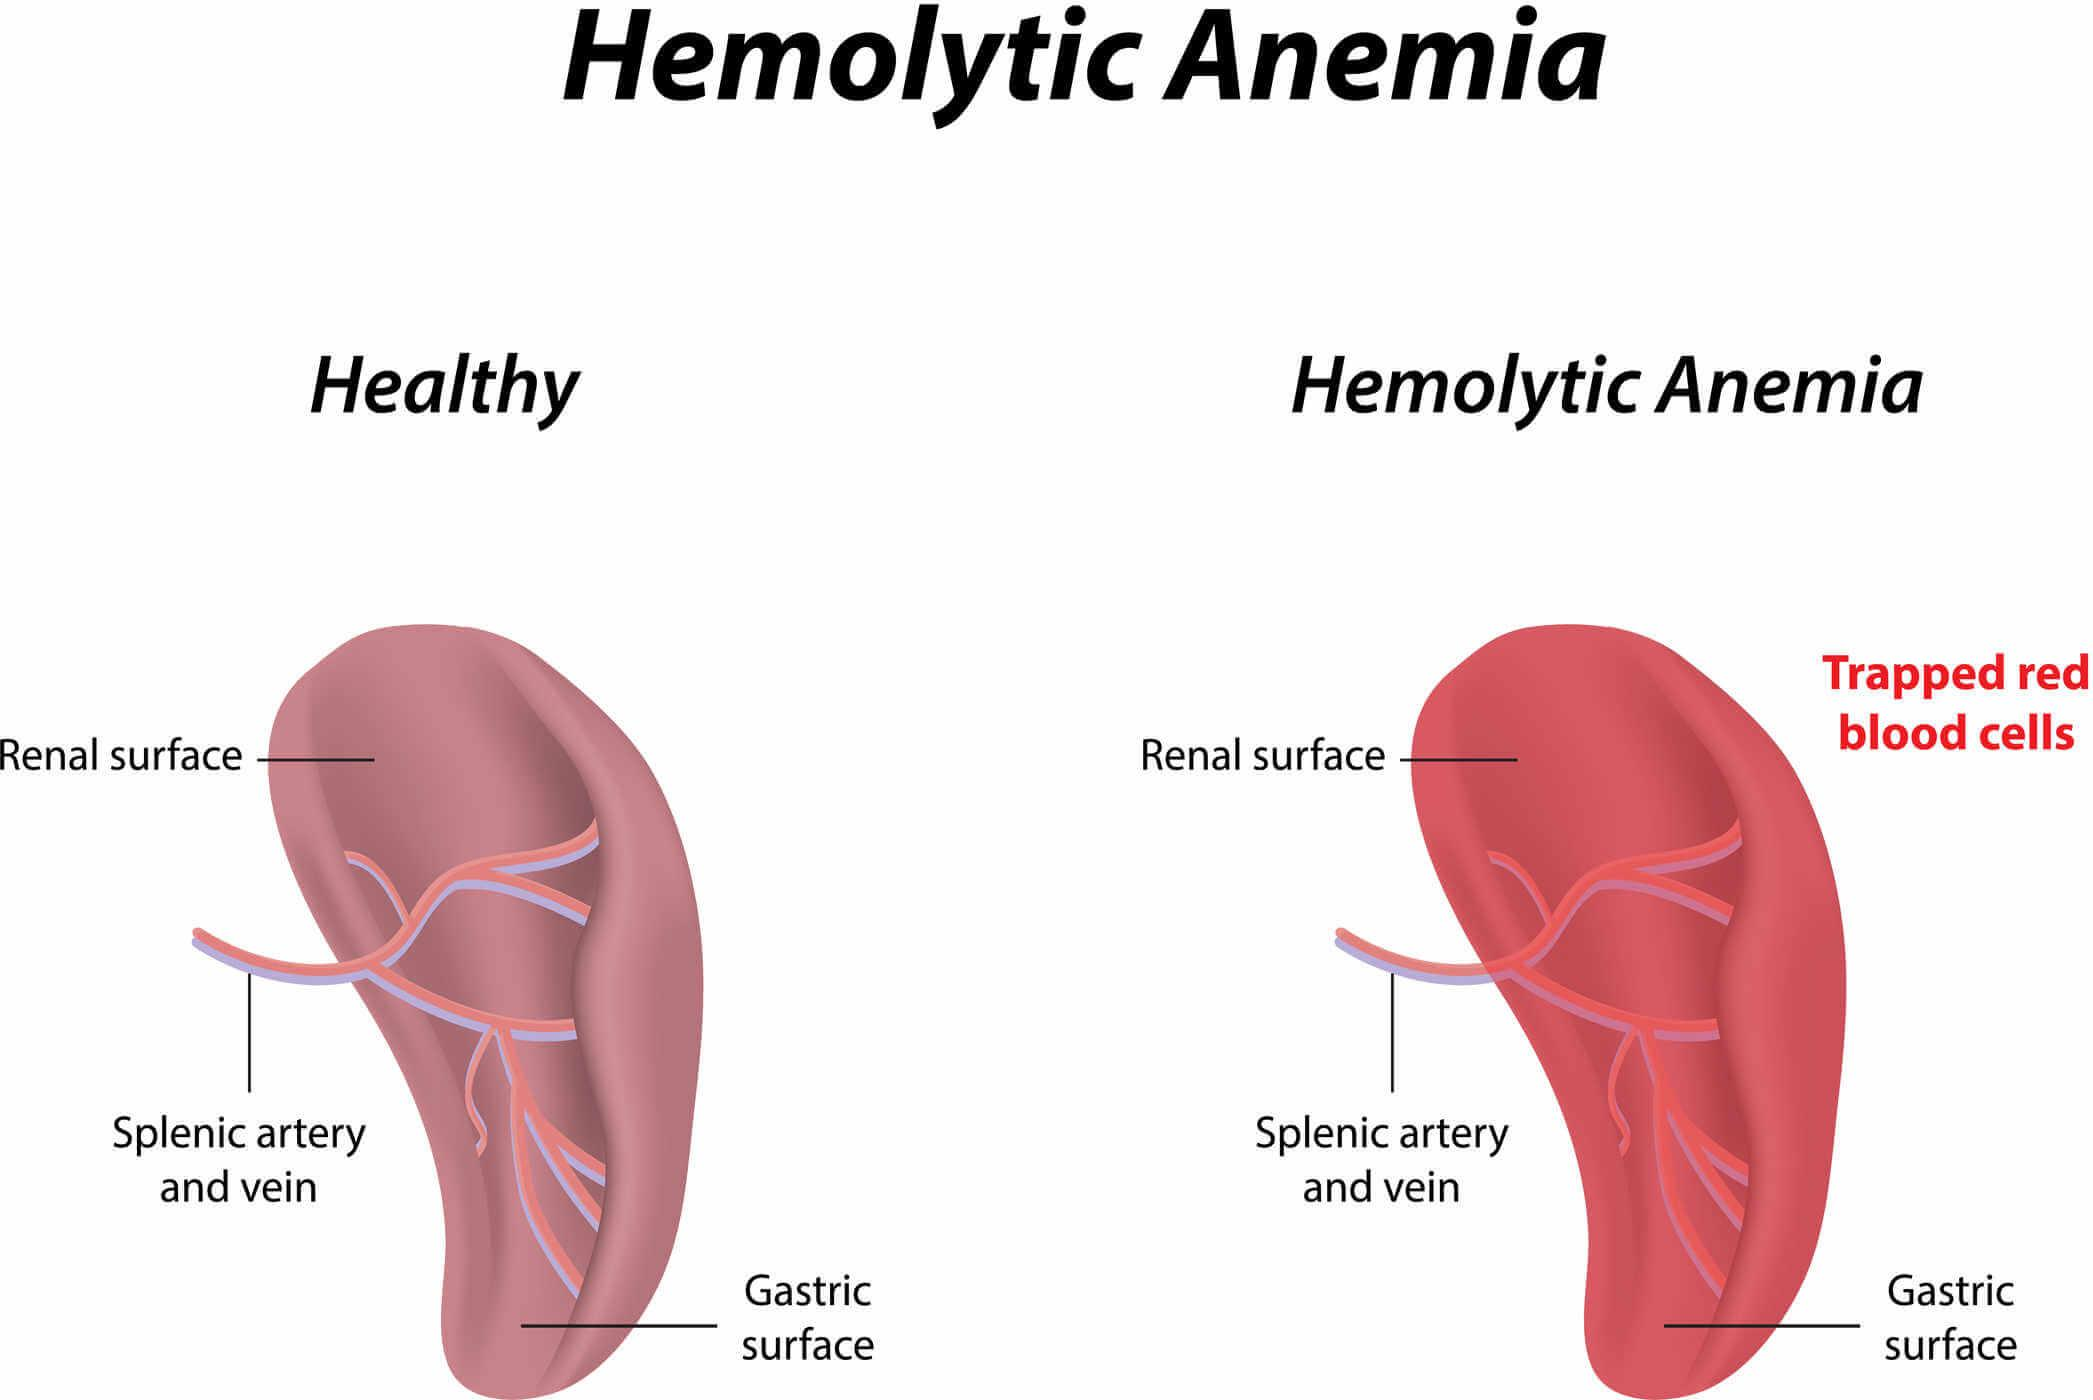 hemolytic anemia from footstrikes - the full runner's injury guide, Skeleton